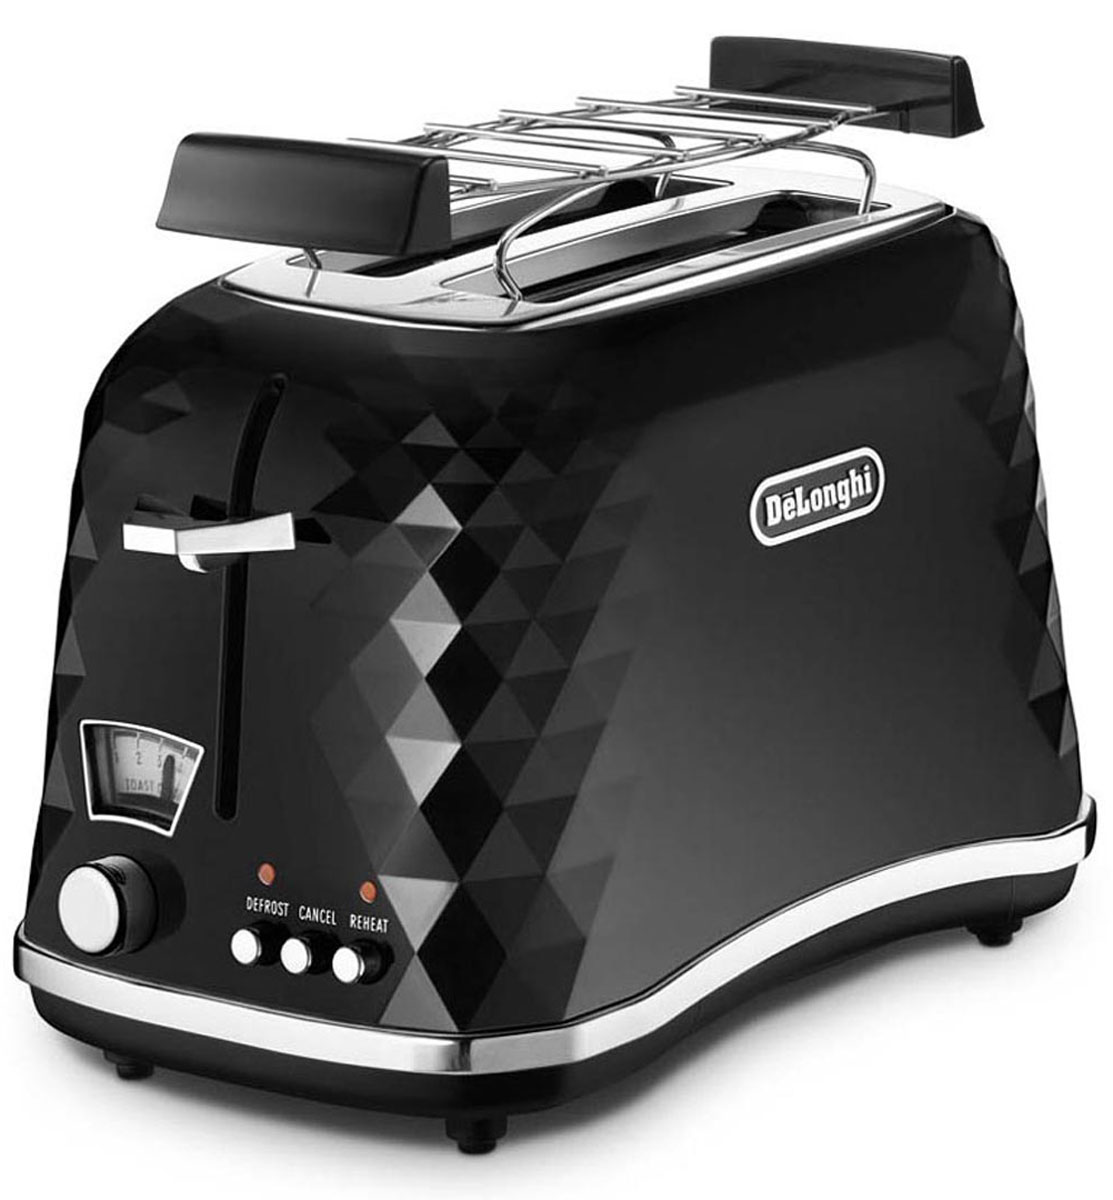 DeLonghi Brillante CTJ2103.BK, Black тостер - Тостеры